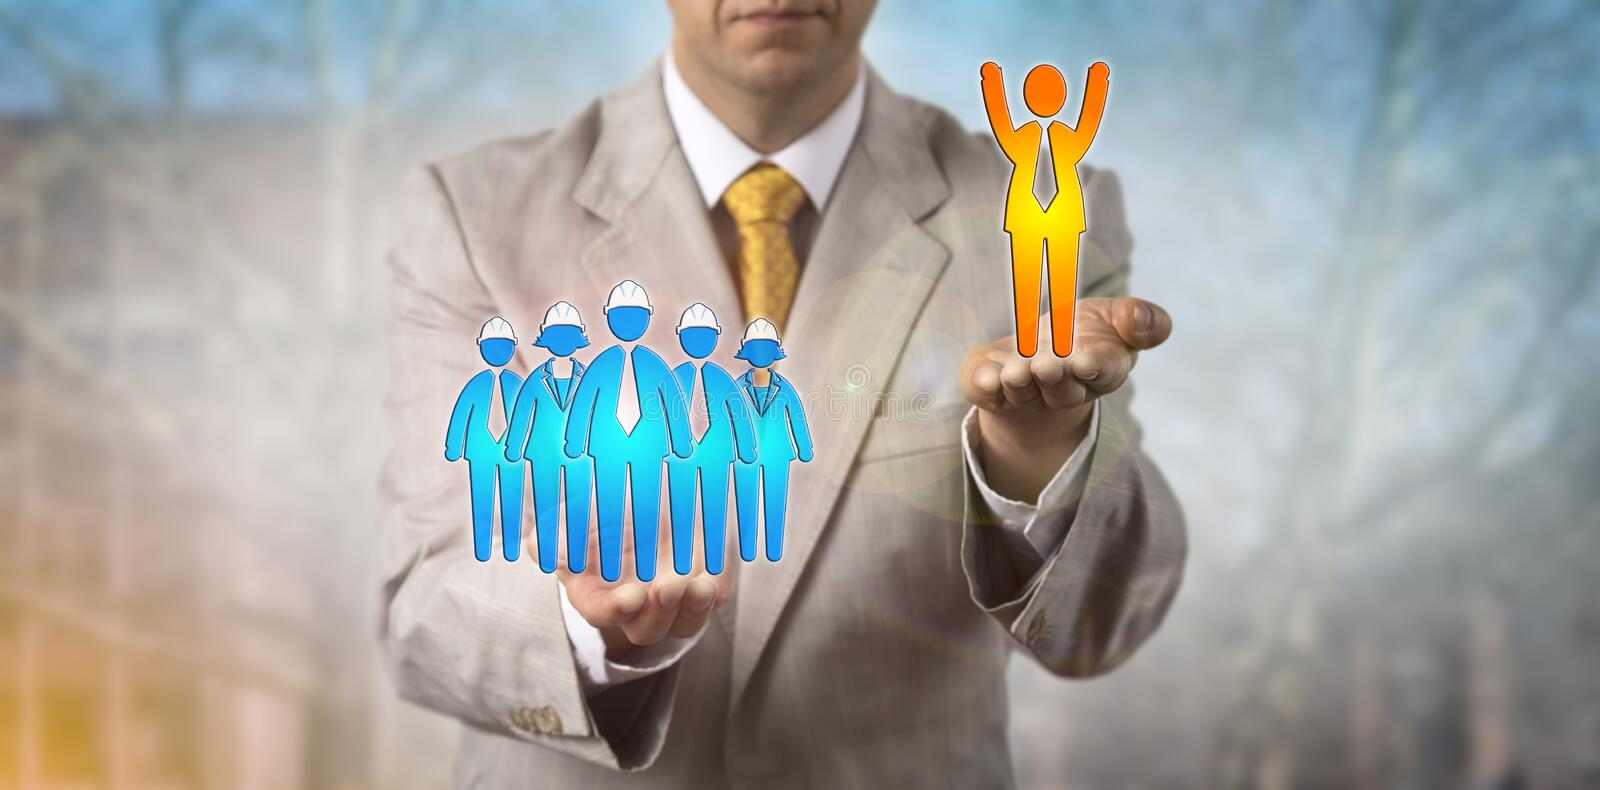 Raising Cheering Male Employee Over Worker Group royalty free stock photos